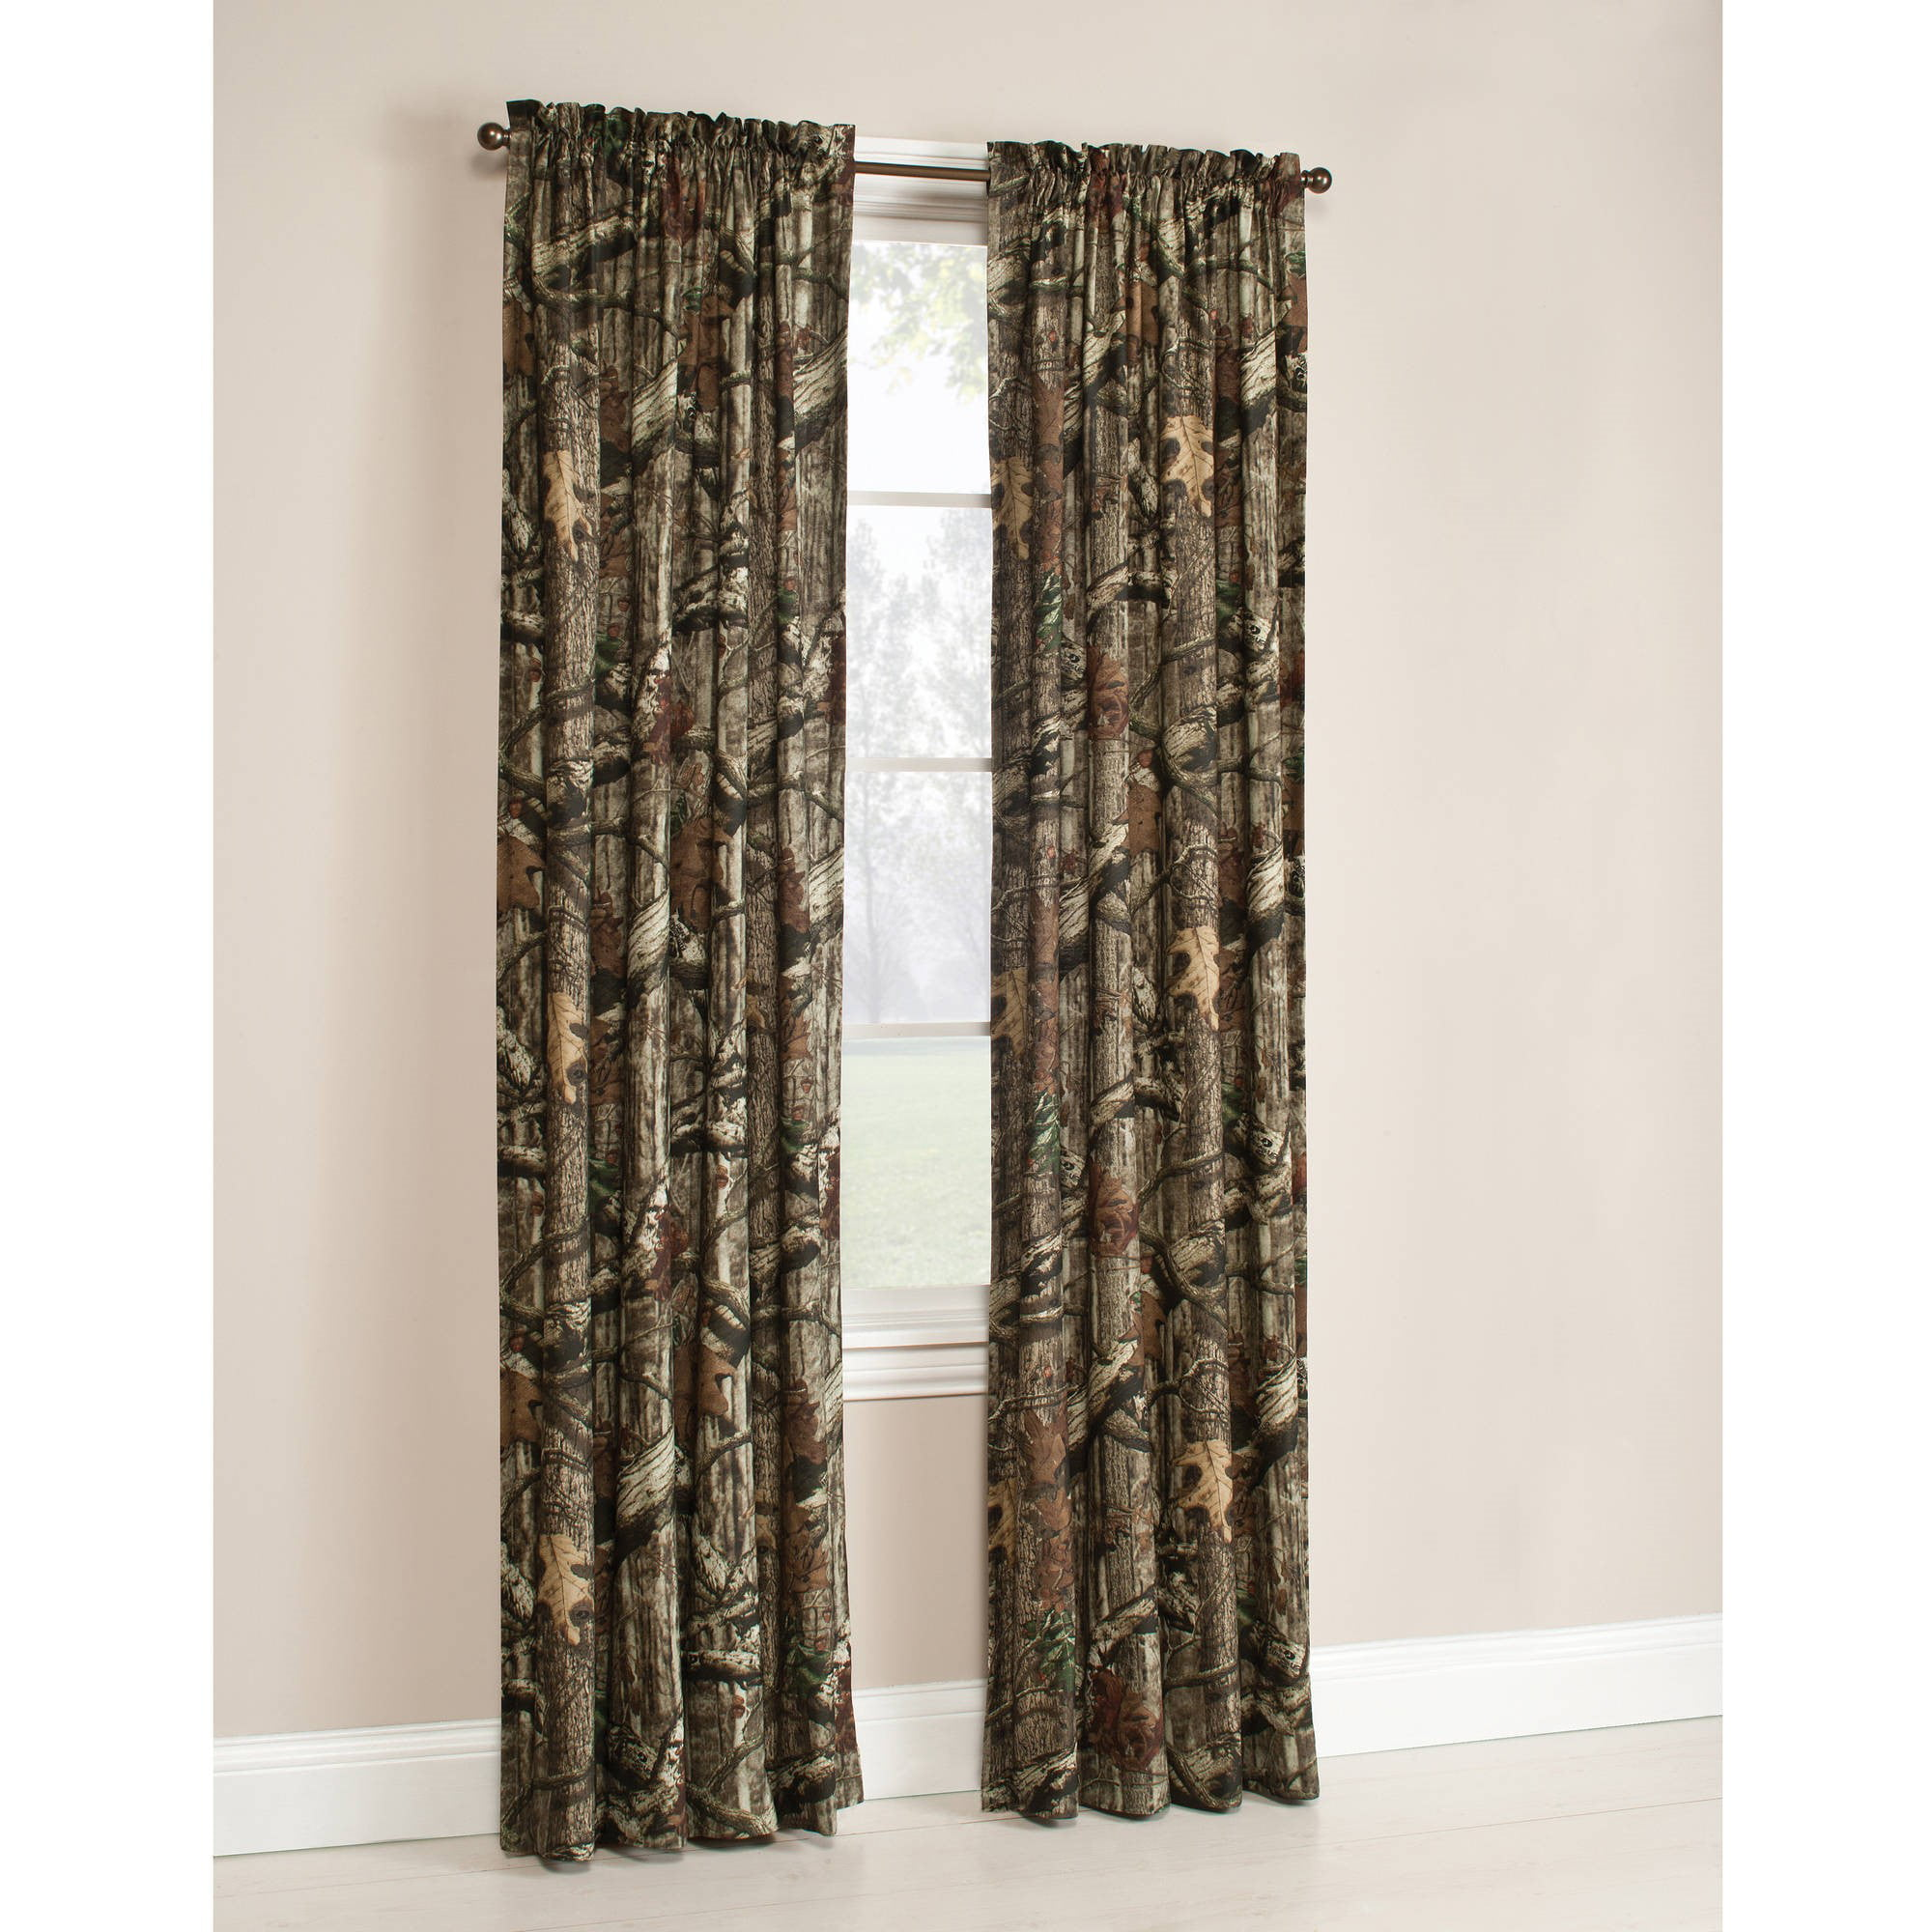 Mossy Oak Break-Up Infinity Camouflage Print Window Curtain Panels by Mossy Oak